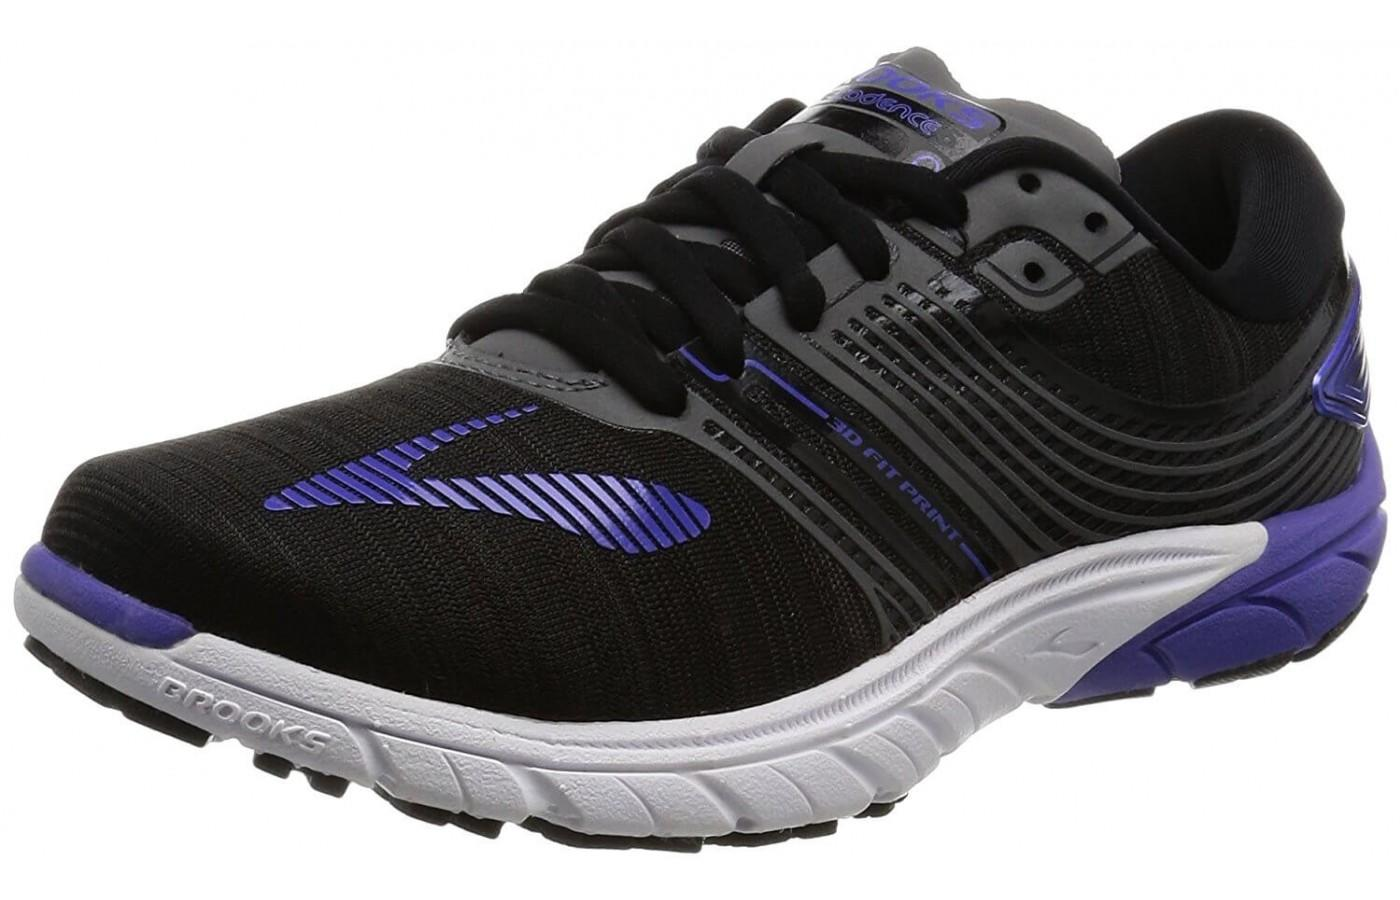 Brooks PureCadence 6 features prominent Brooks logo